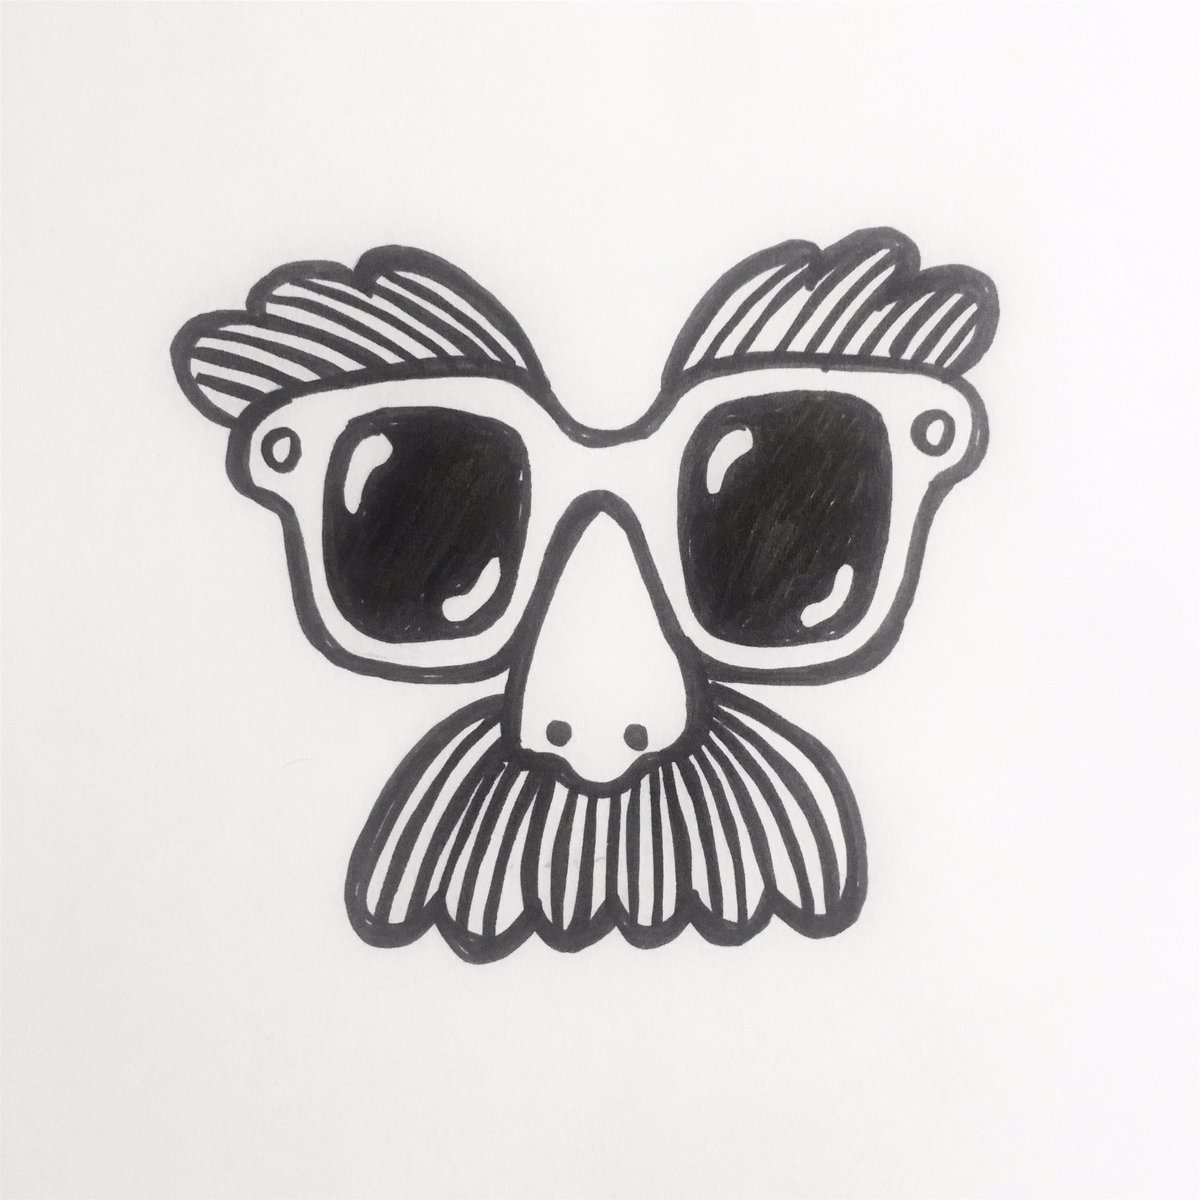 I managed one week of #inktober &amp; the prompt is  shy  #inktoberday7 #inktober2017 #illustration #drawing #doodle #art #moustache <br>http://pic.twitter.com/1TpZZYa984